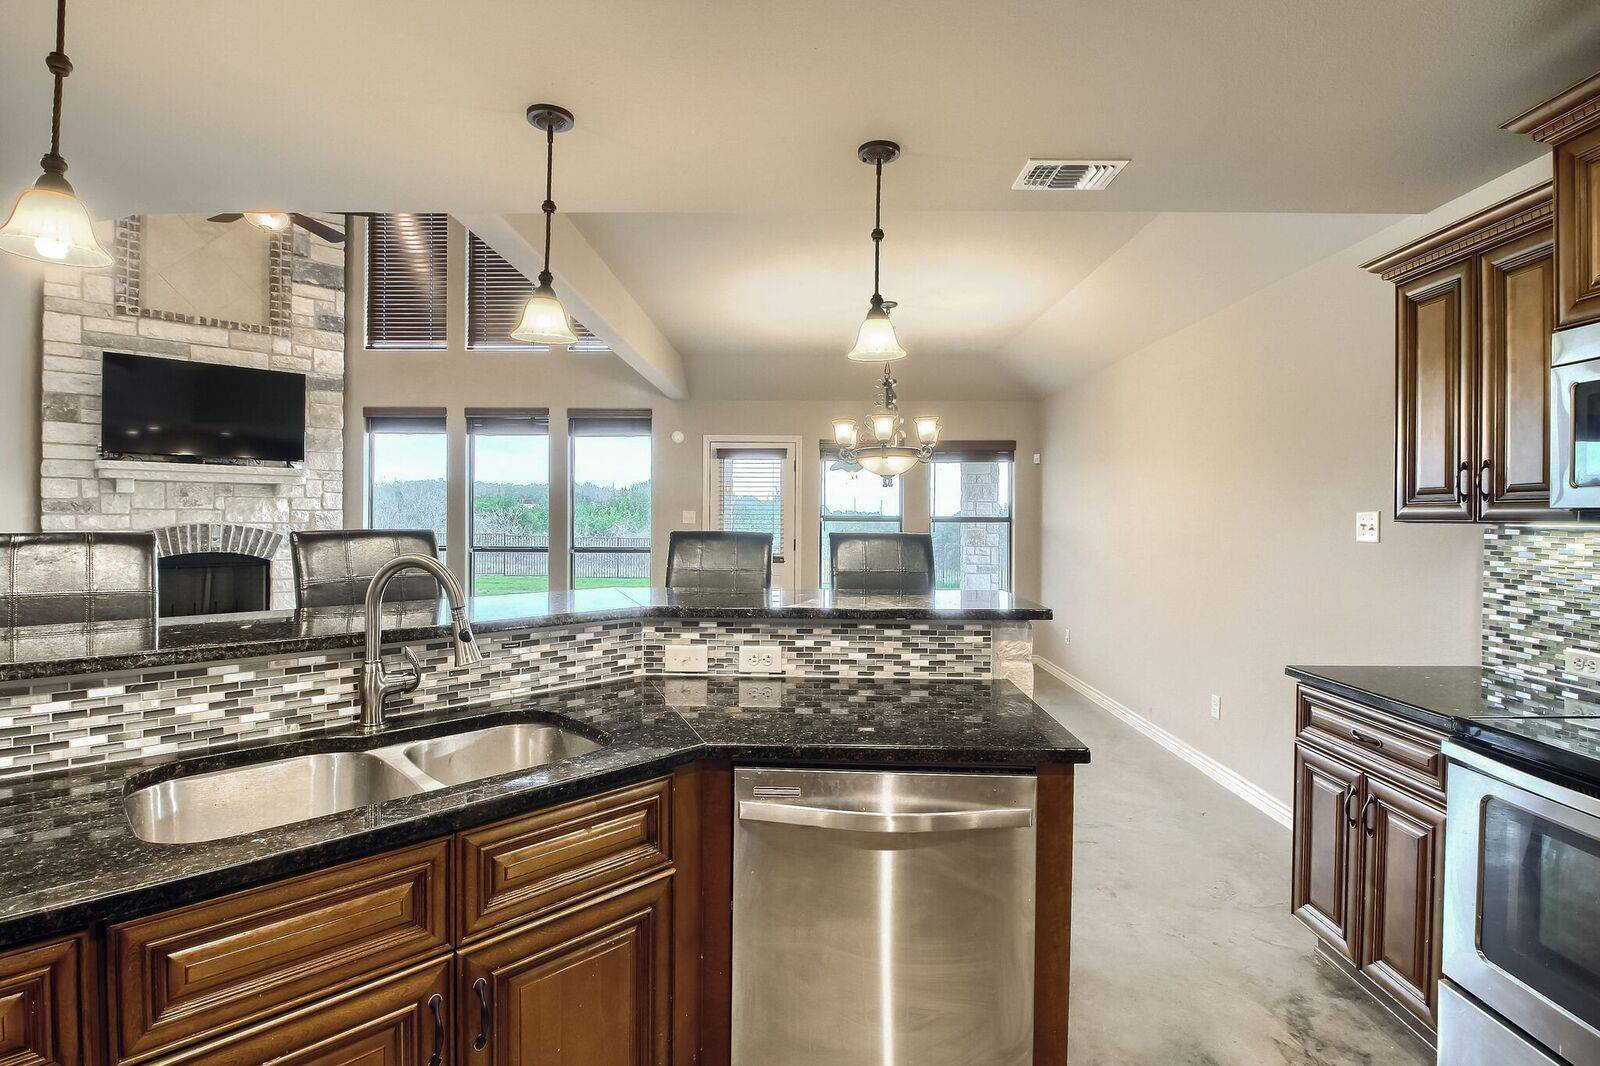 Georgetown TX home for sale 211 S. Sawgrass Lane